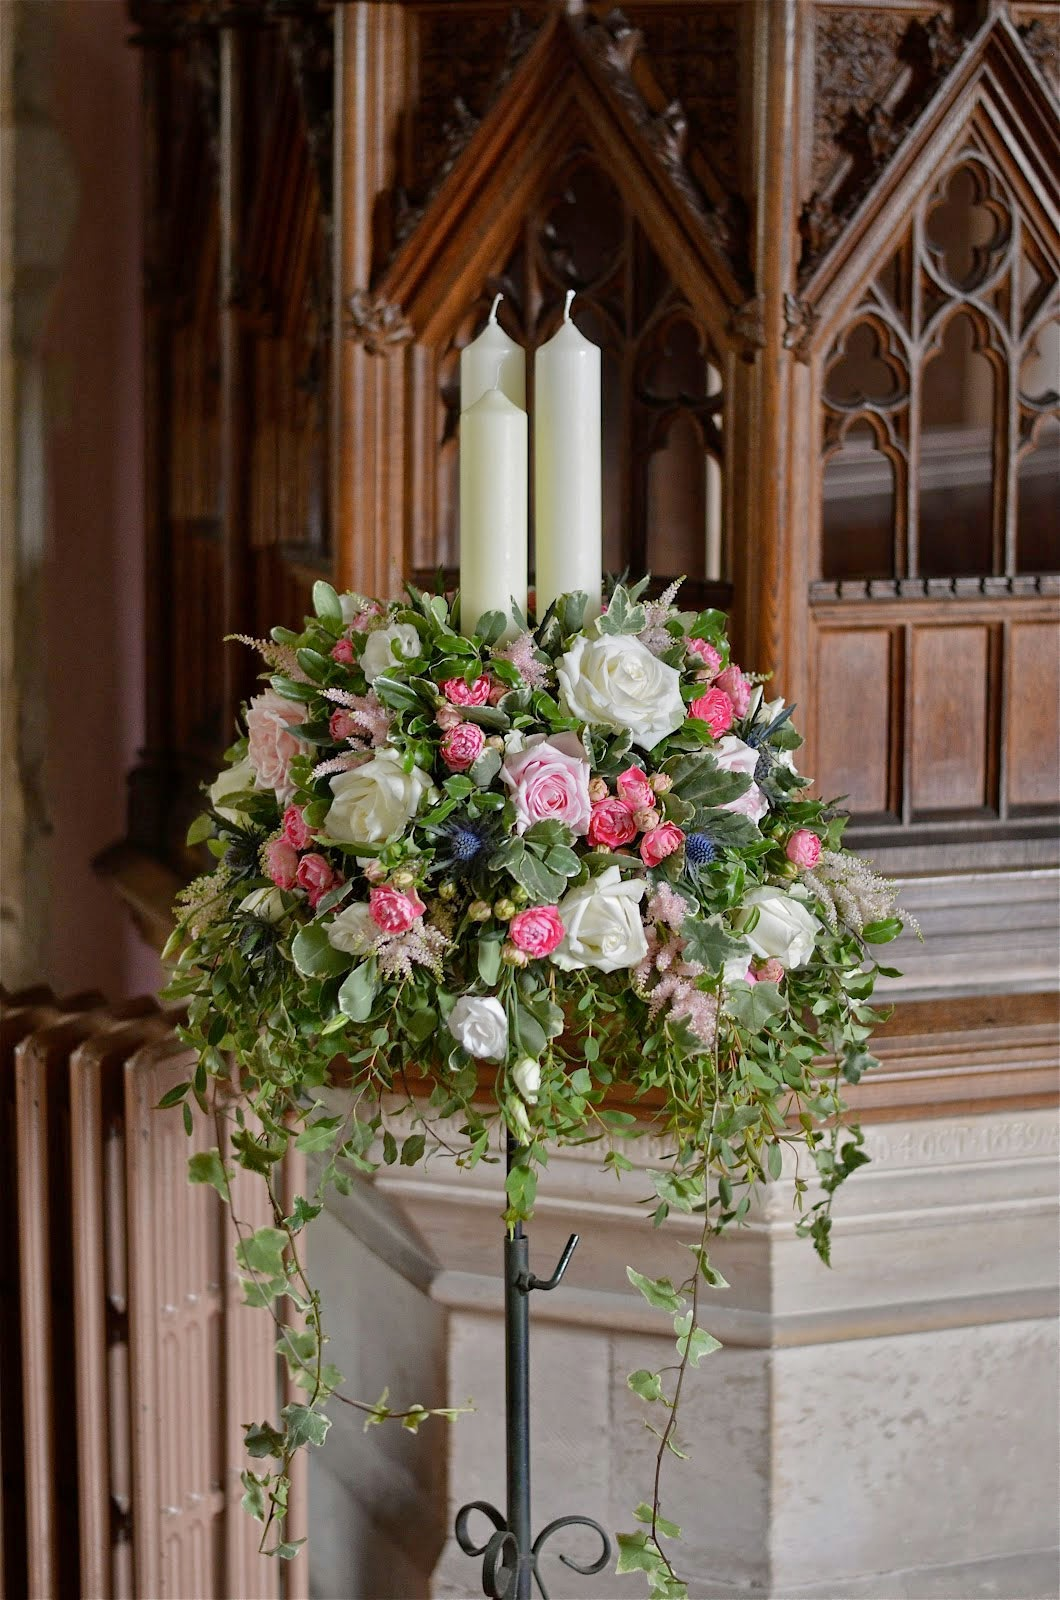 Exotic Flowers Names And Pictures Wedding Flower Arrangements For